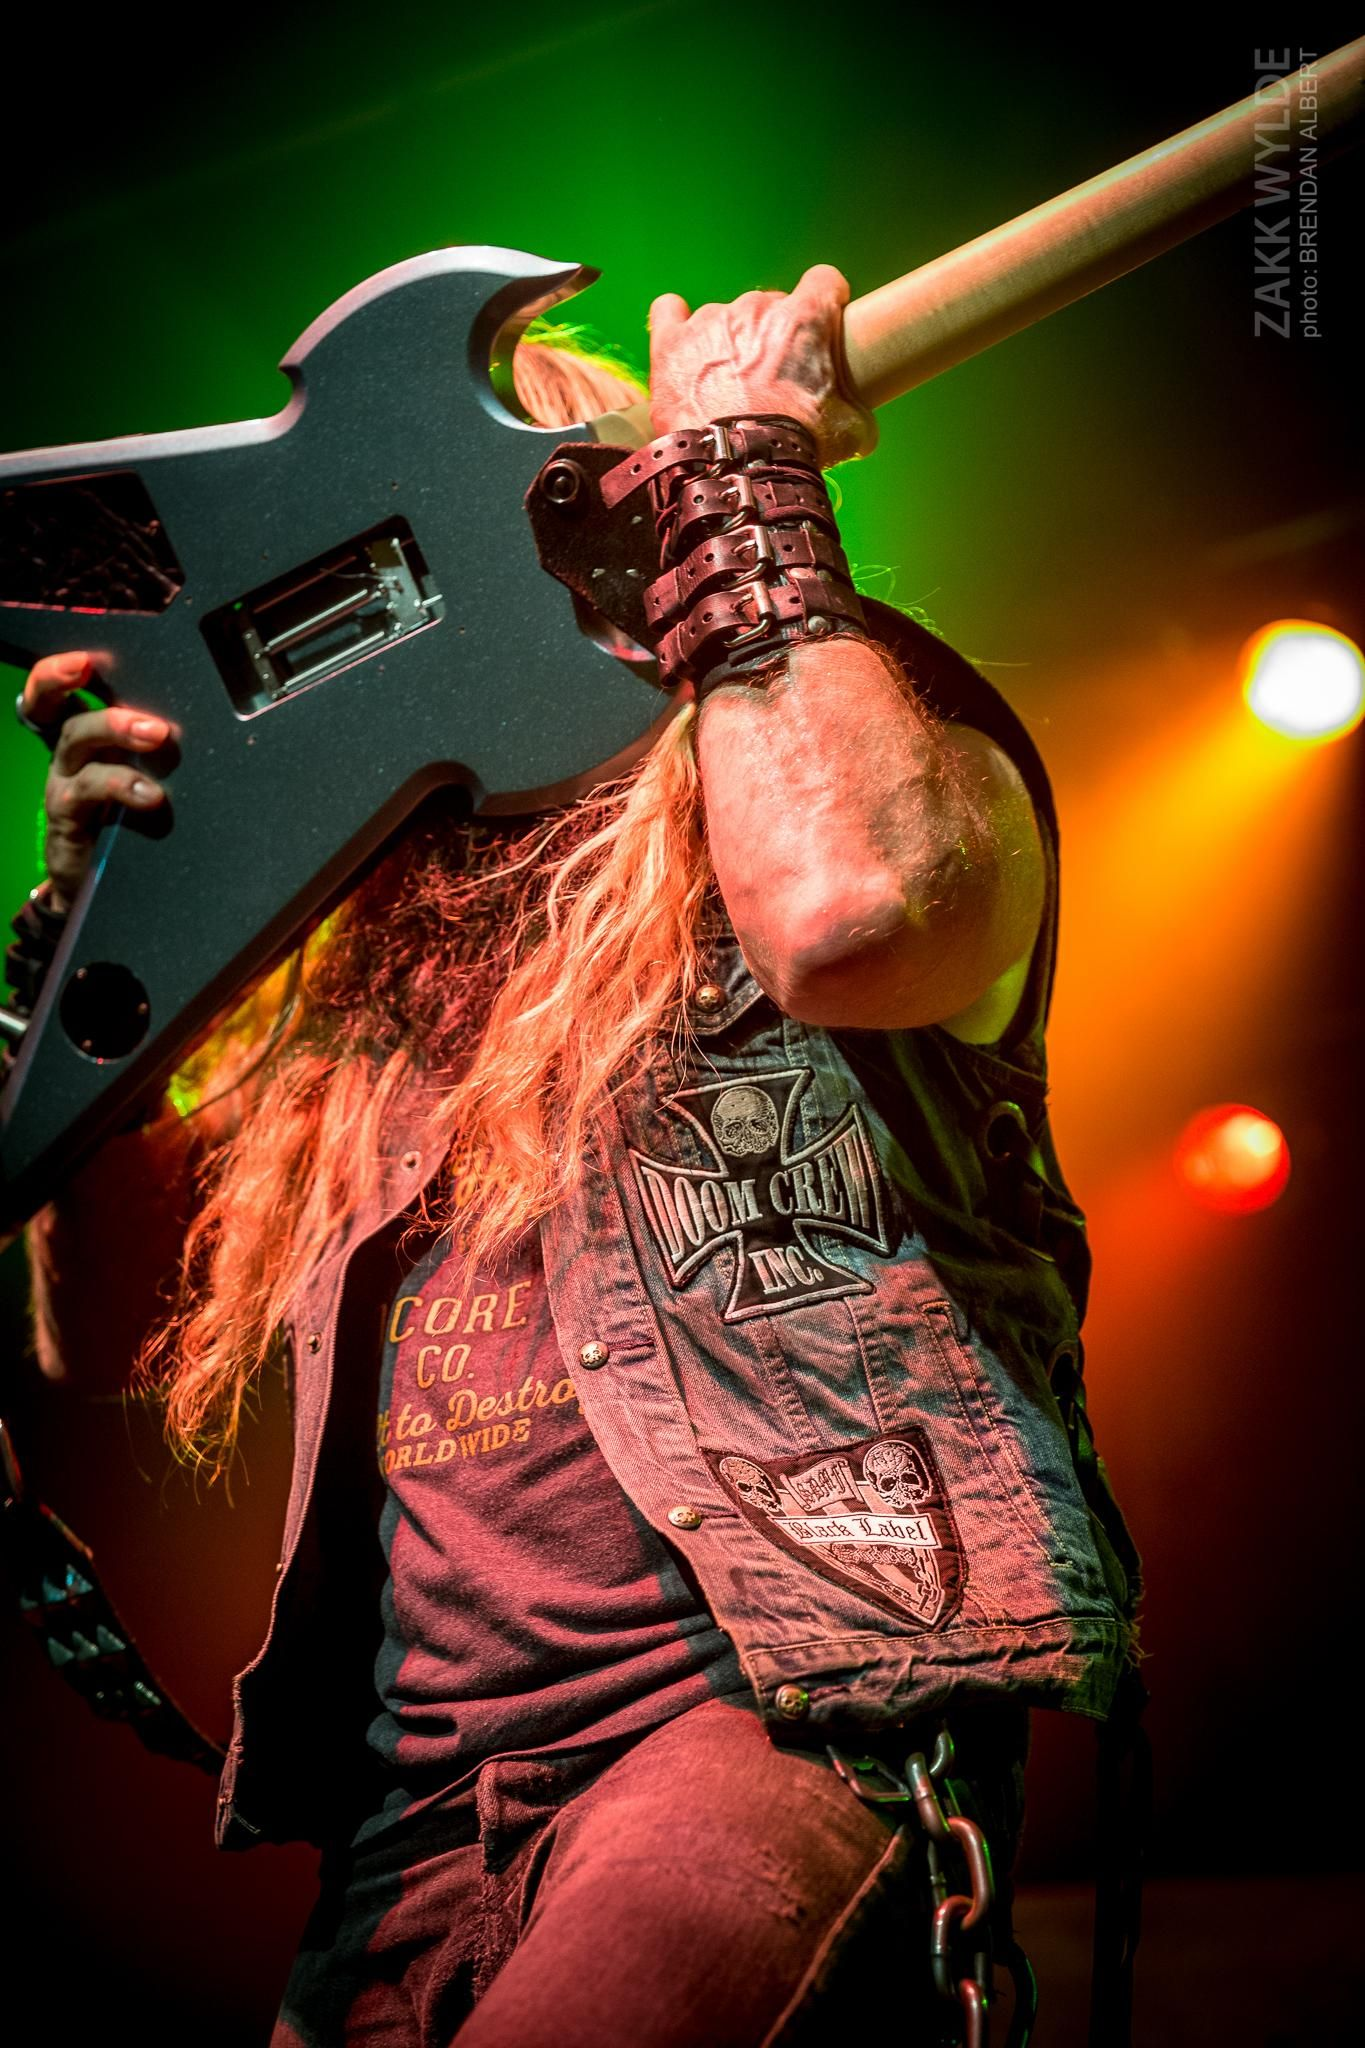 ZAKK WYLDE Guitar god doing his thing Shot by me